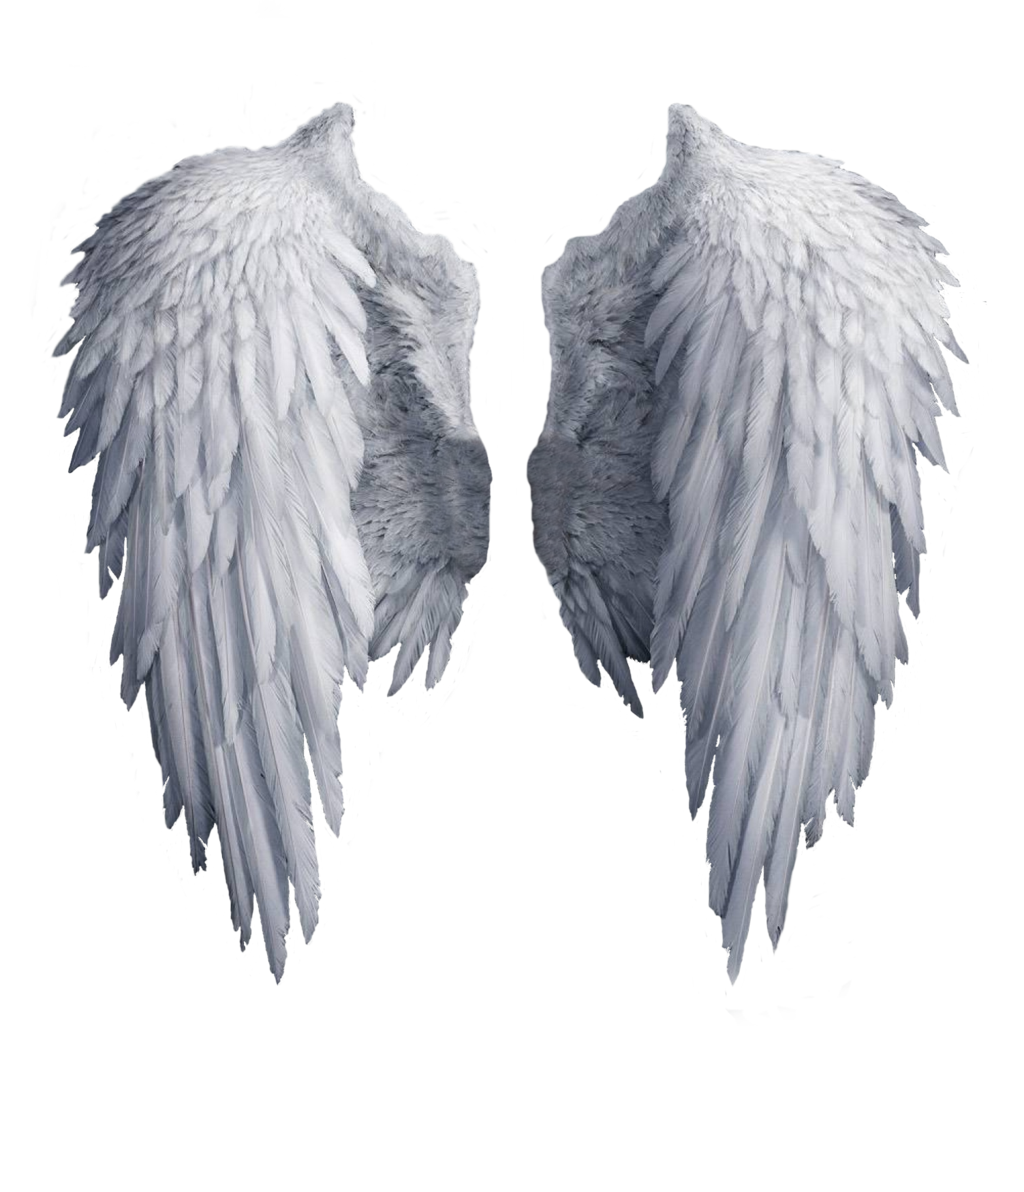 Wing Images Png Transparent 1789